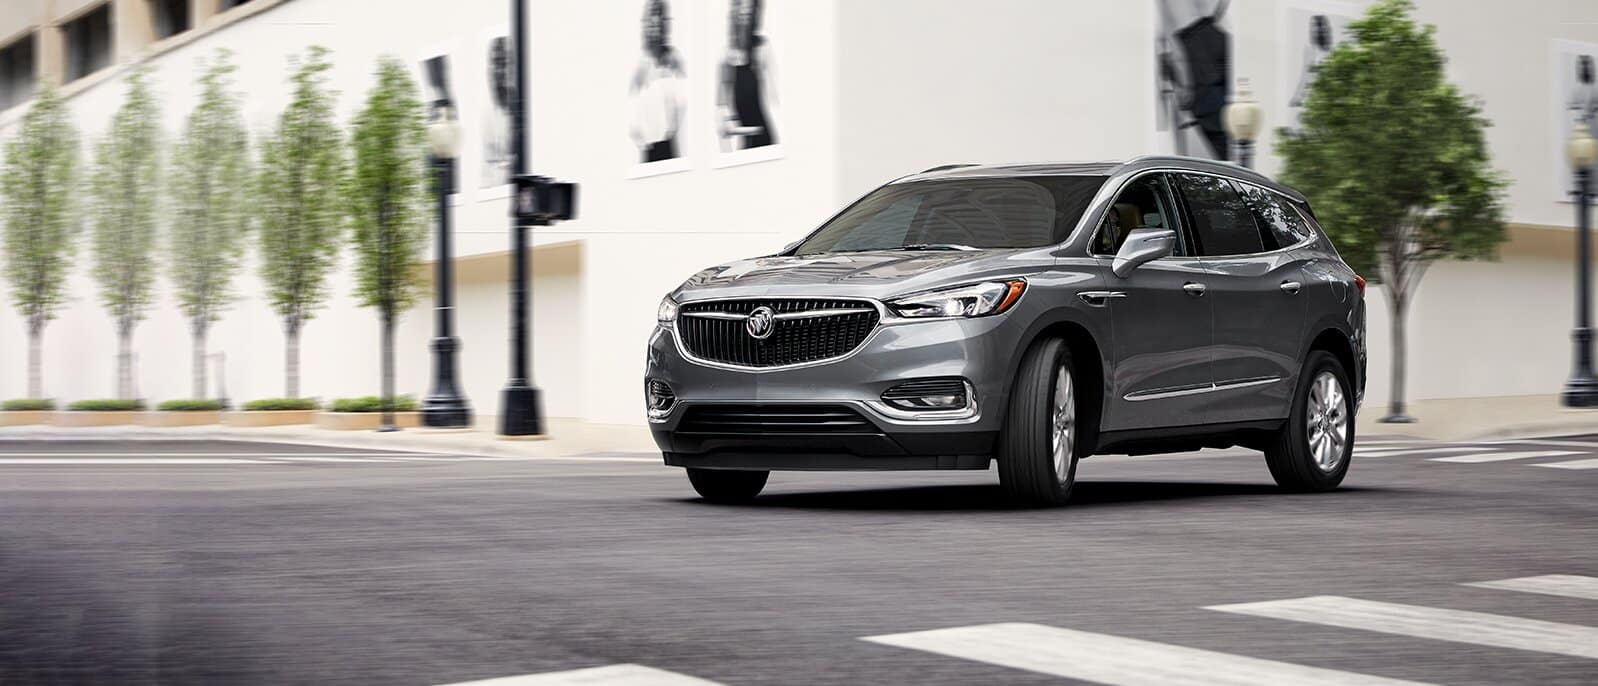 Southern Buick Greenbrier Enclave